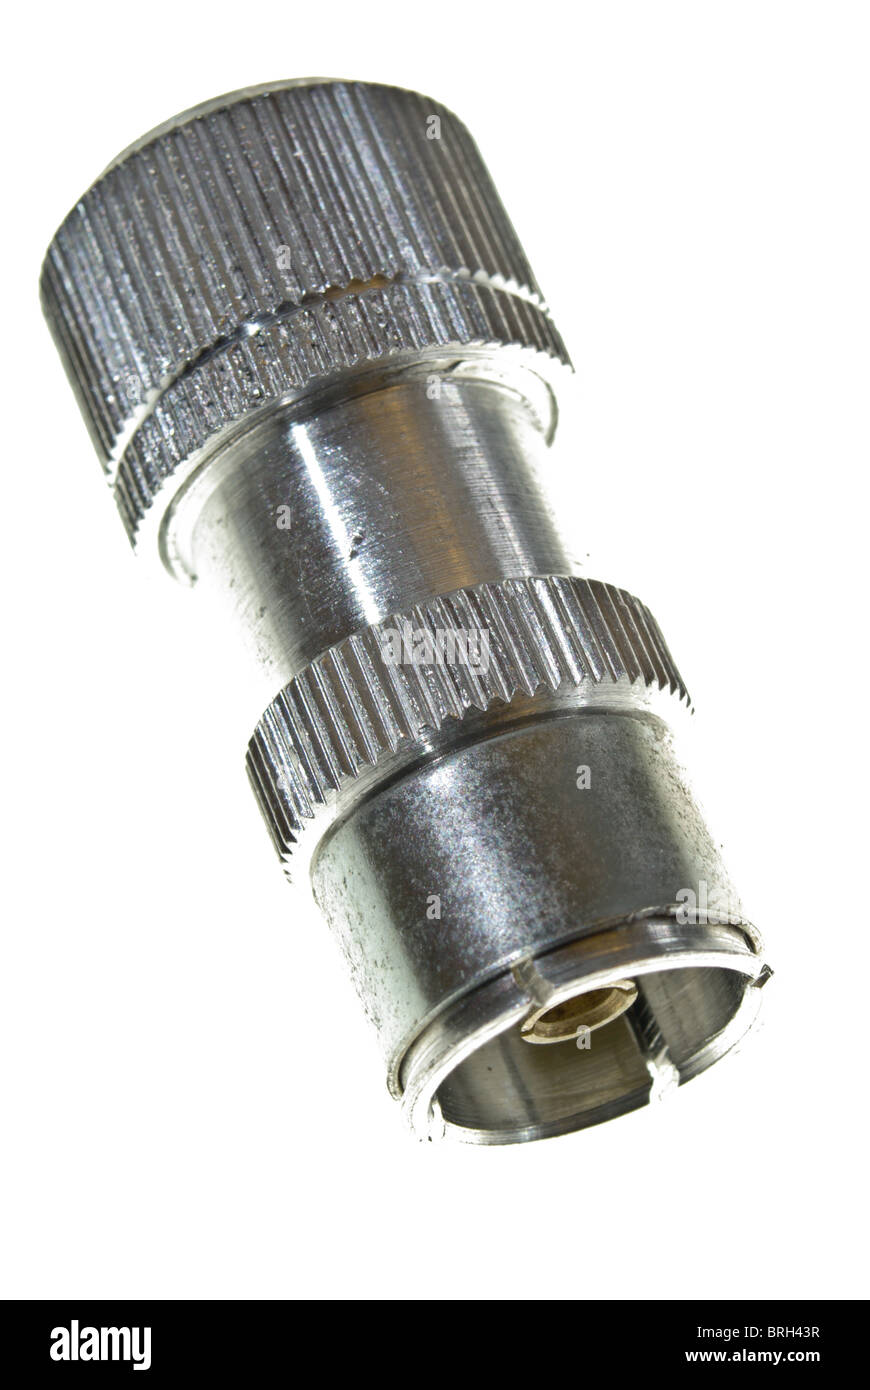 Co-axial female connector for TV aerial cable - Stock Image